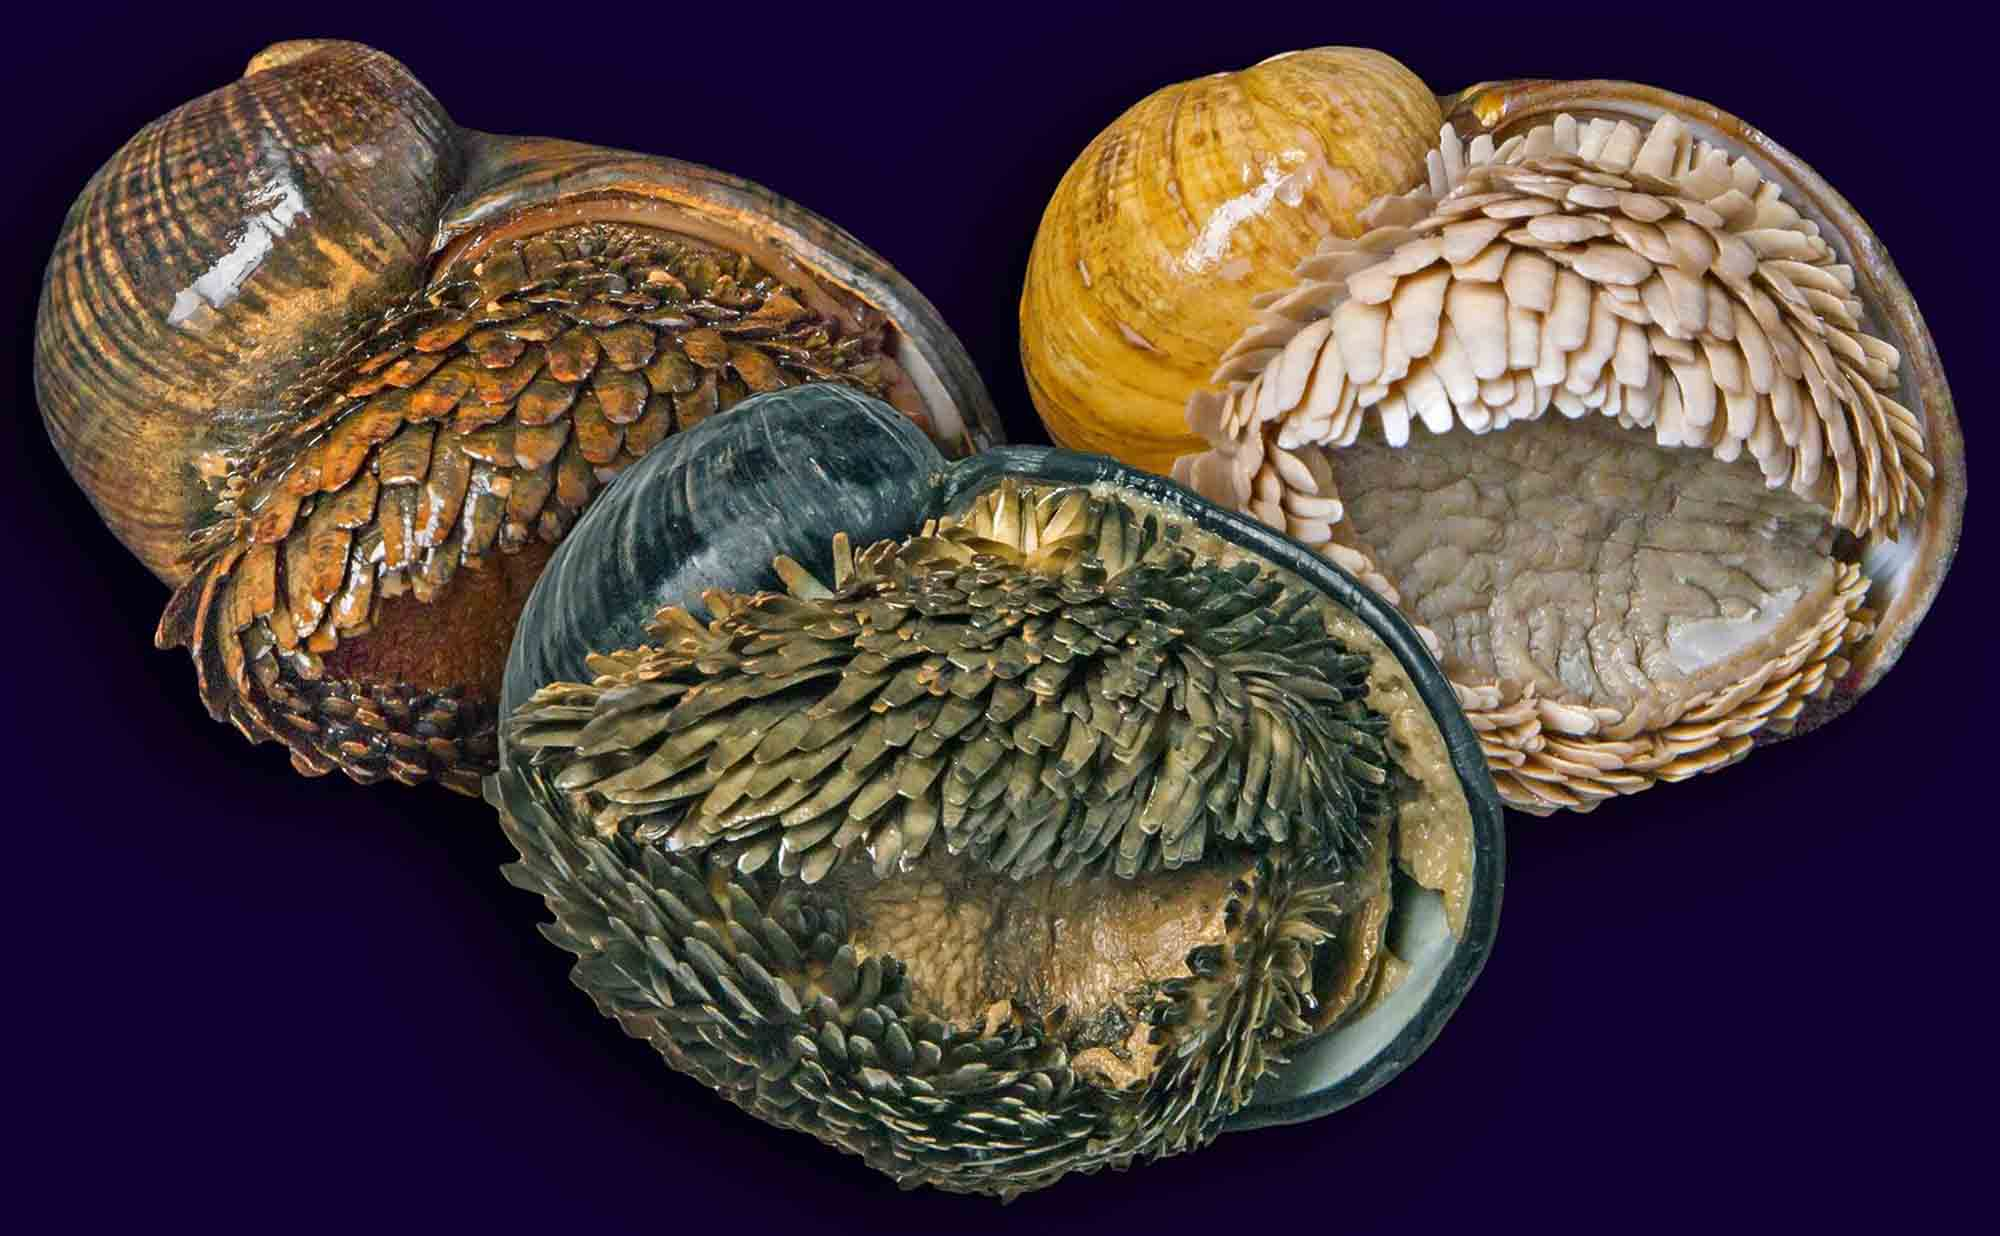 scaly-foot snail